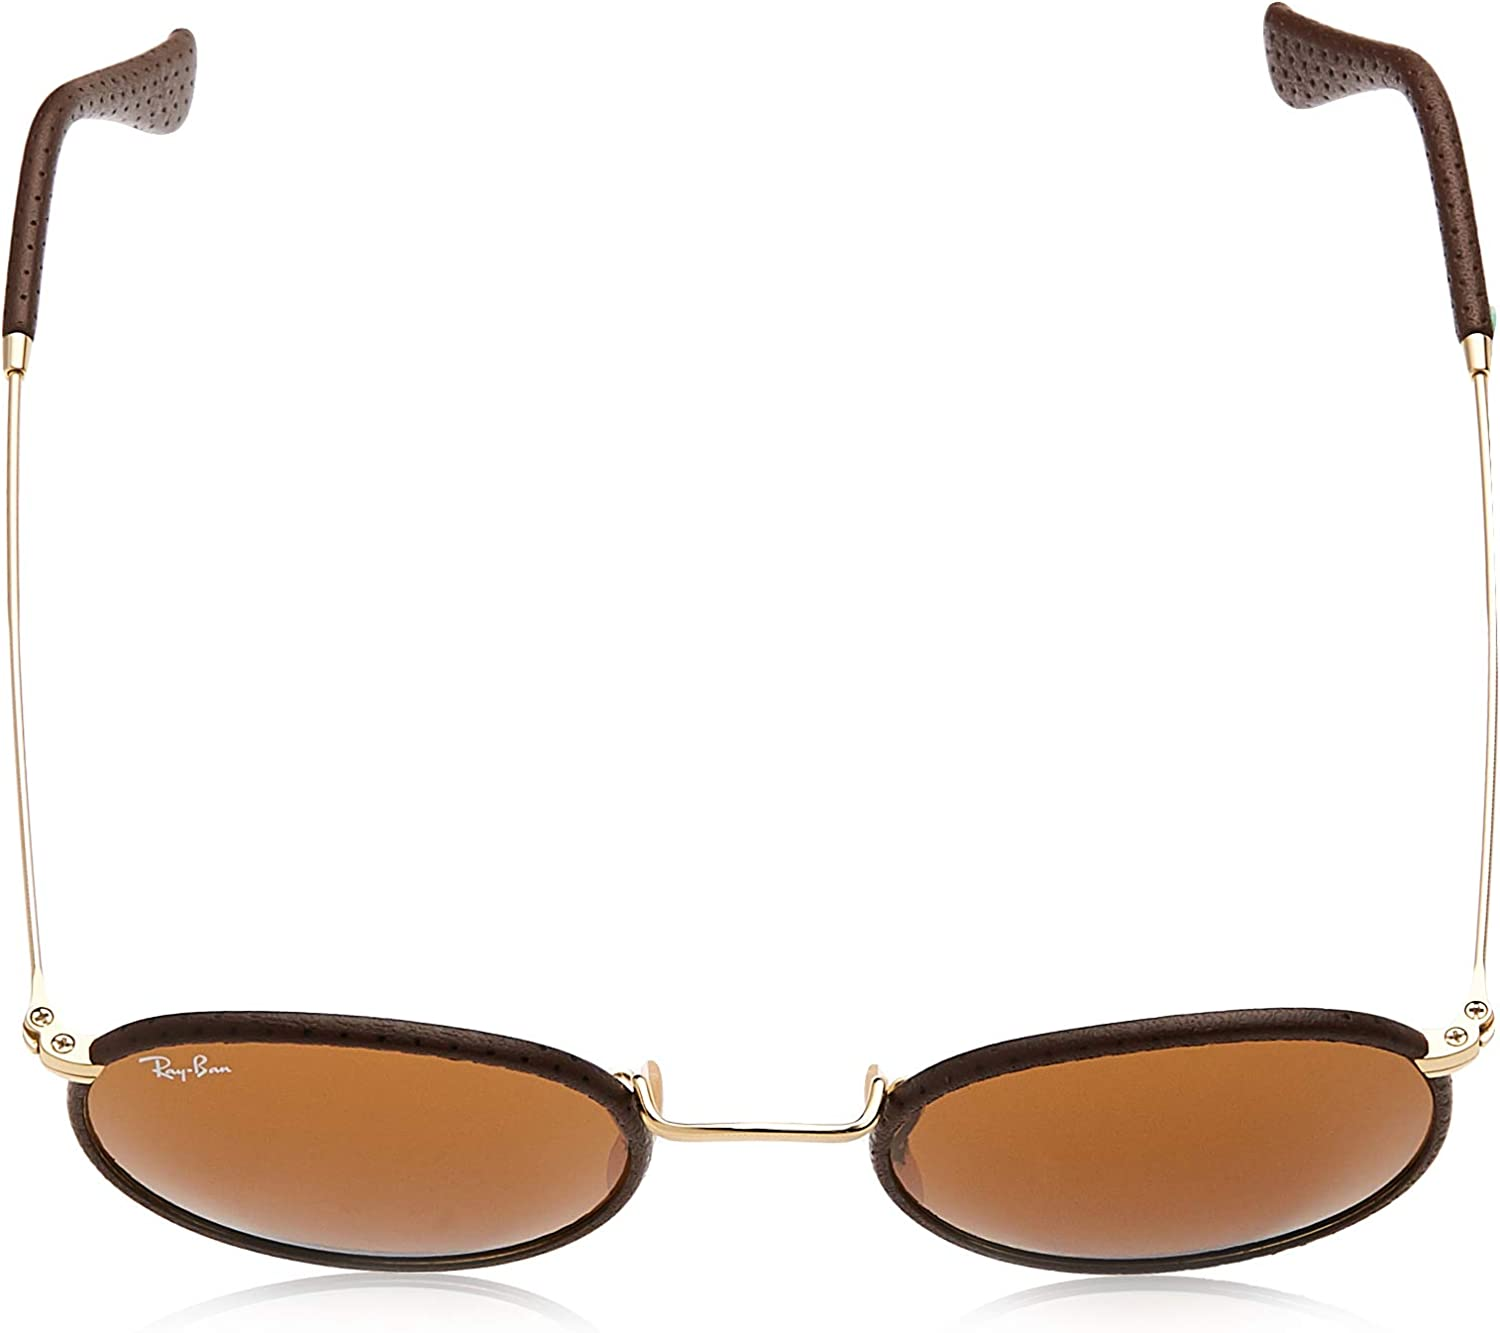 Ray-Ban Sonnenbrille ROUND CRAFT (RB 3475Q) Marron (Leather Brown/Brown)